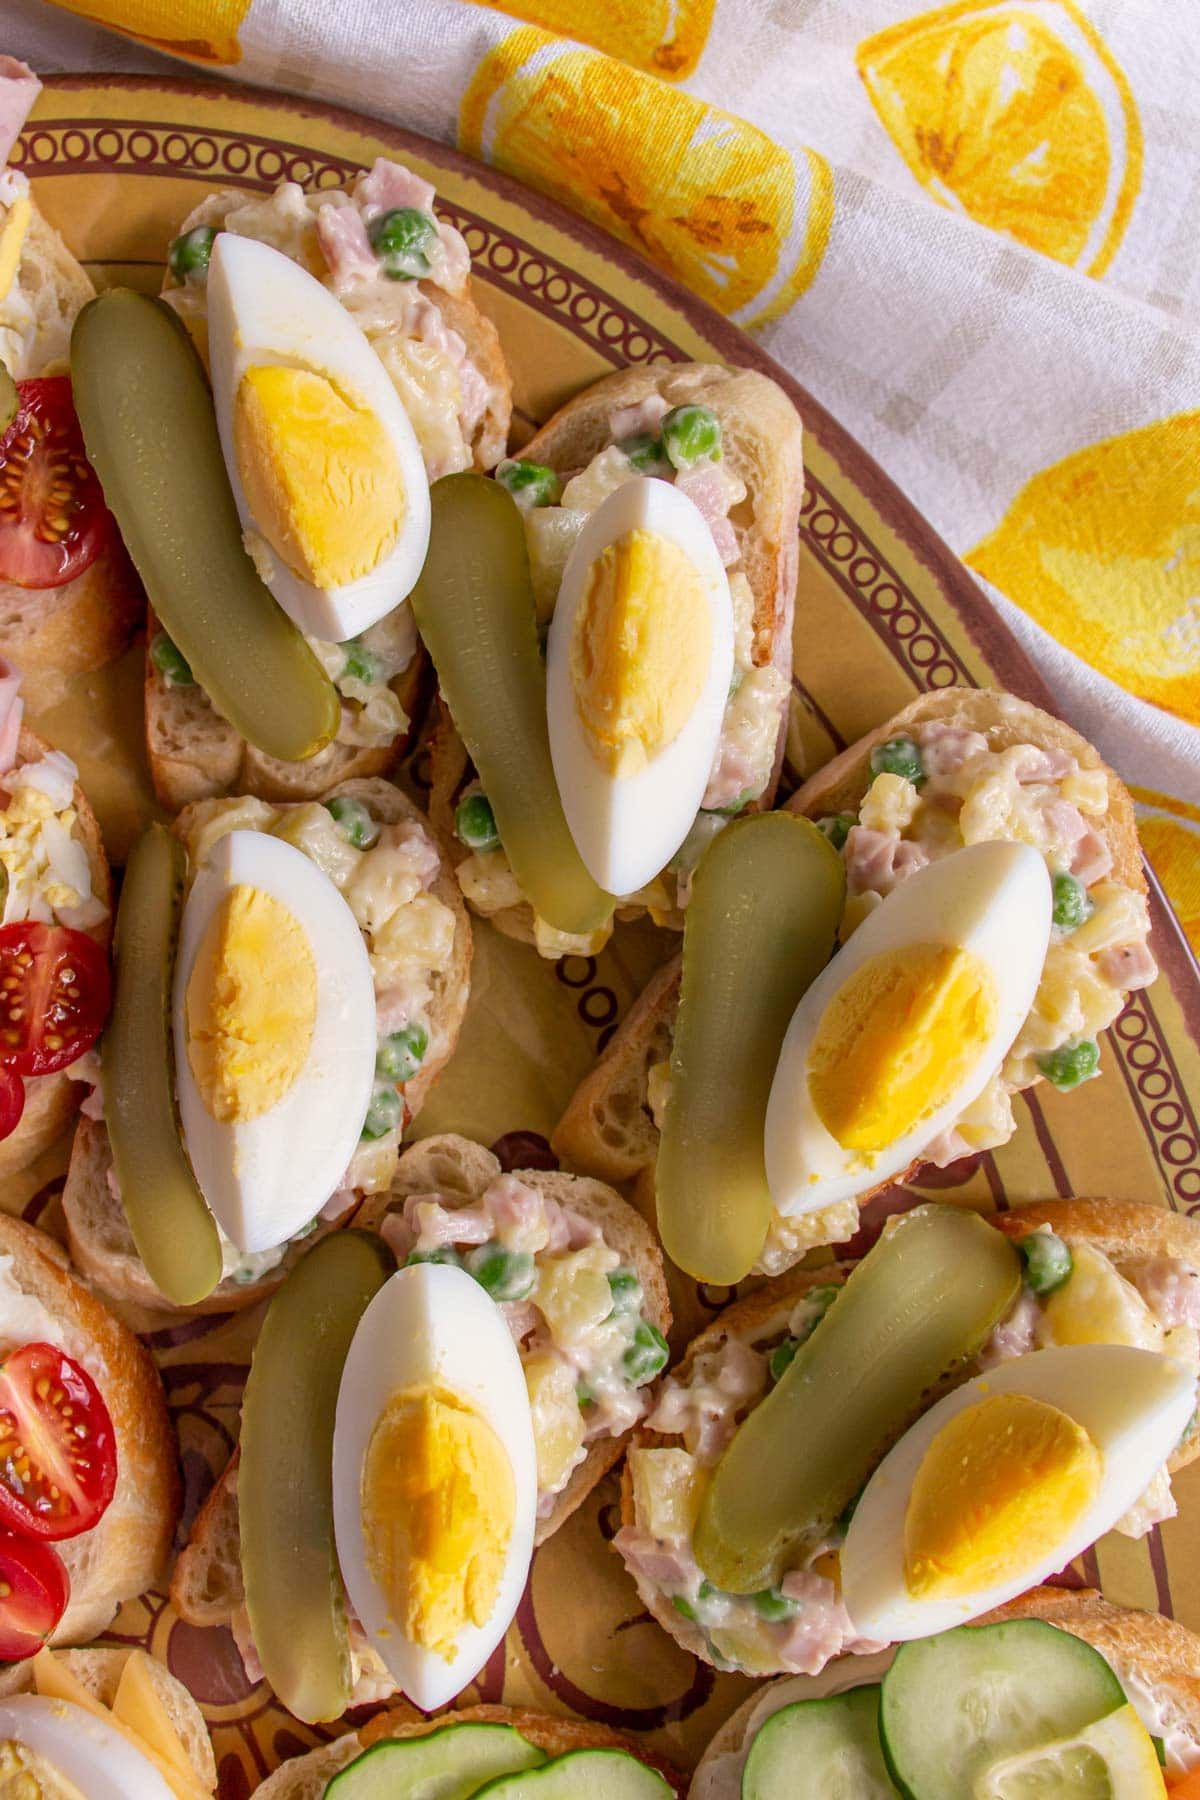 Open-faced sandwiches topped with potato salad, hard-boiled egg and pickle.